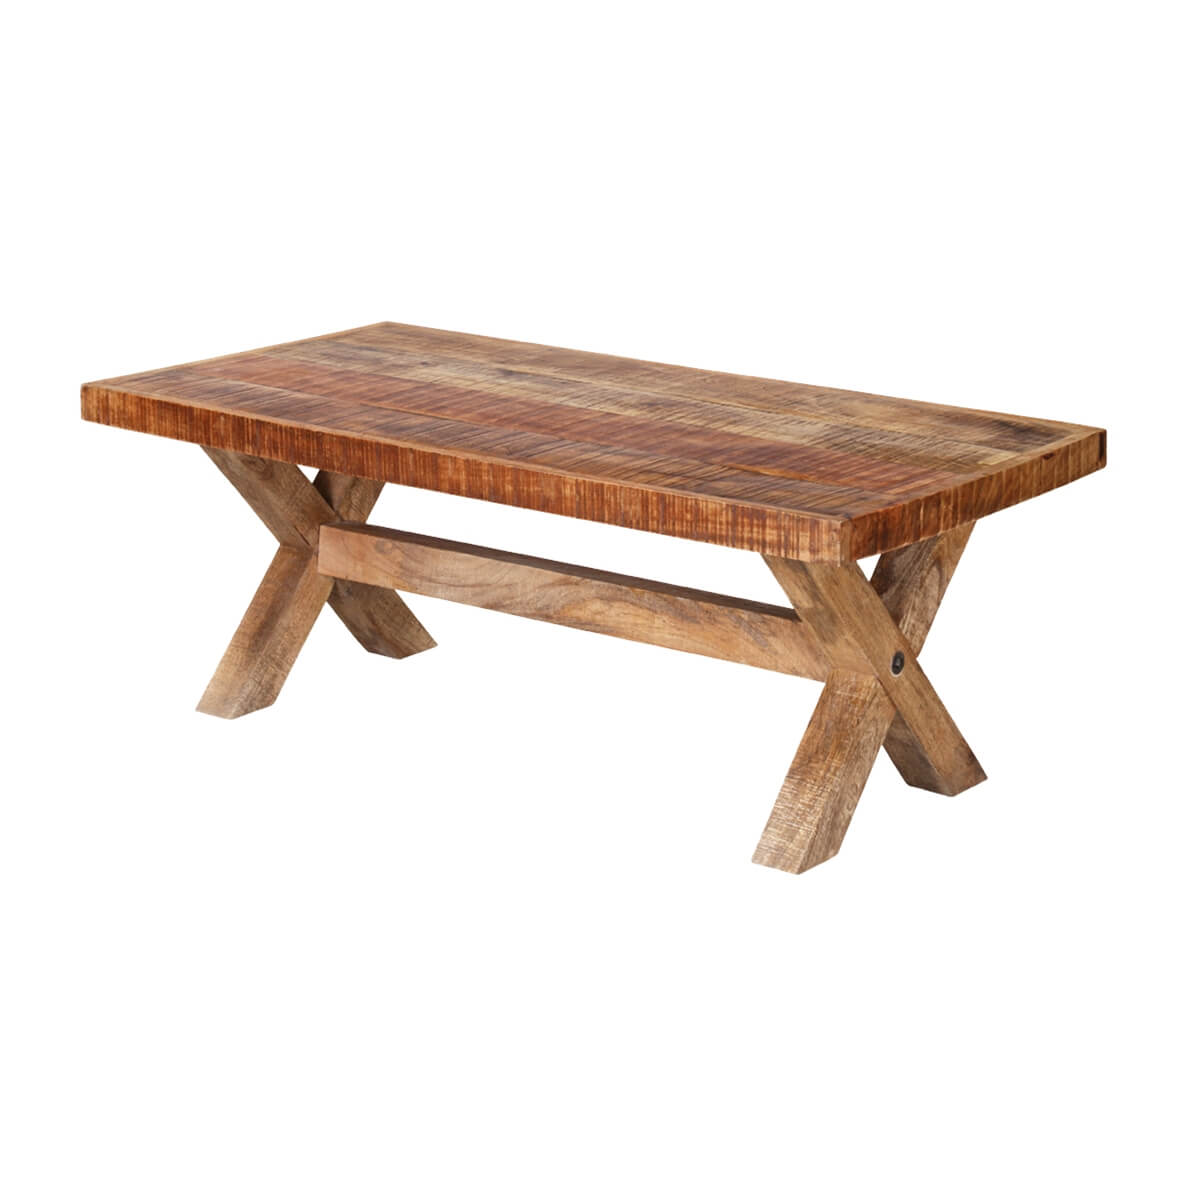 Picnic Style 47 Mango Wood Rustic Coffee Table